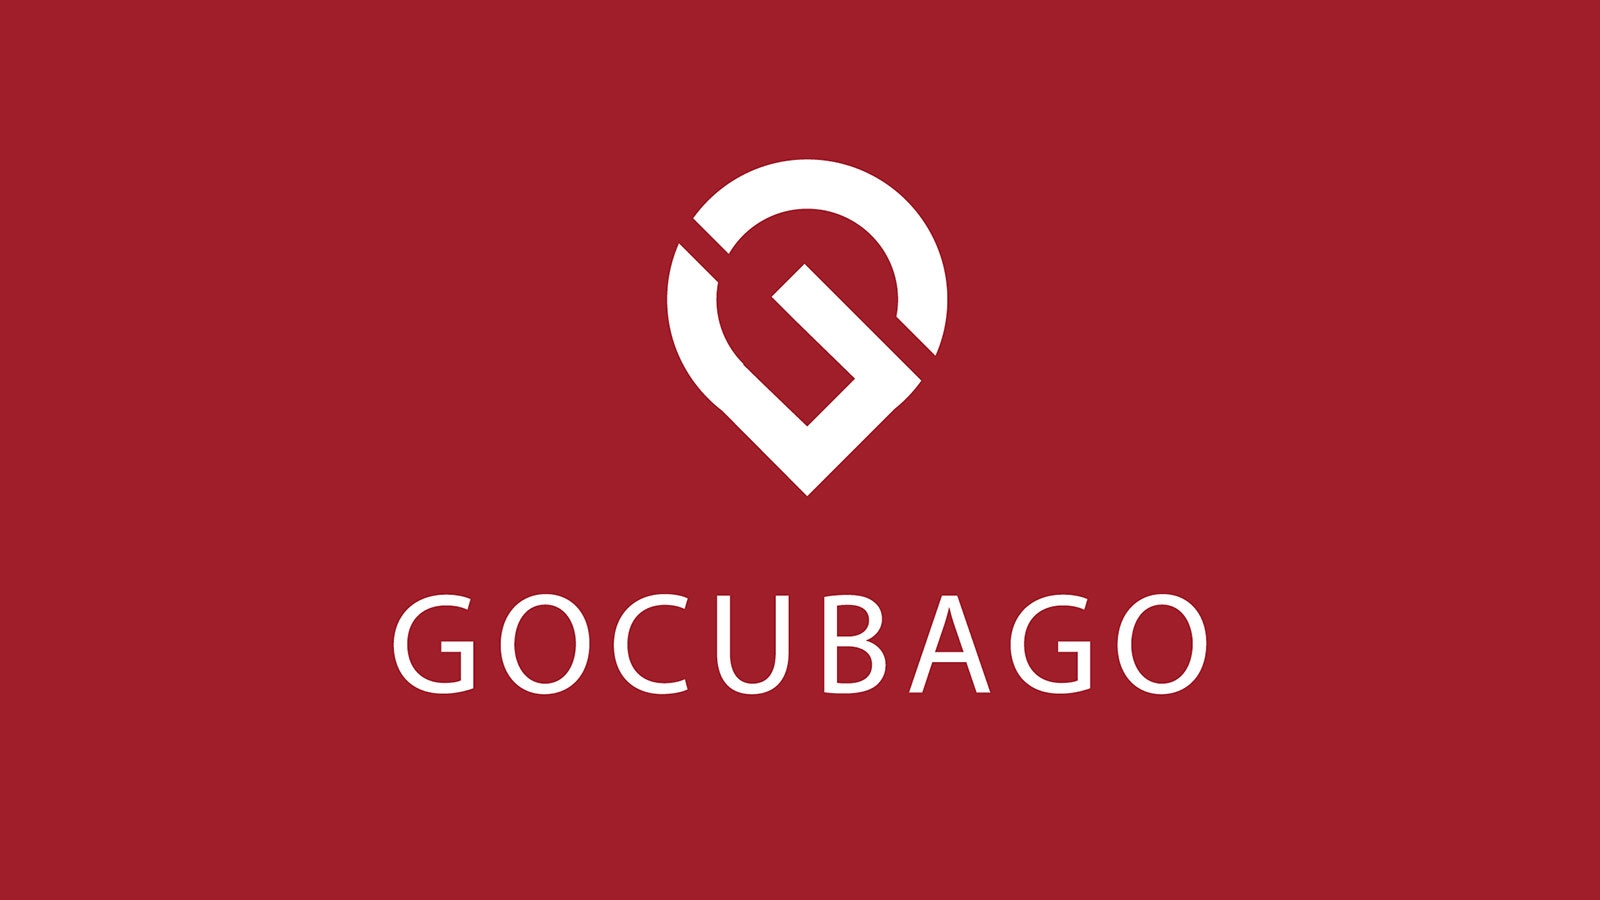 Go Cuba Go | gocubago.com | 2018 (Logo No 03) © echonet communication GmbH